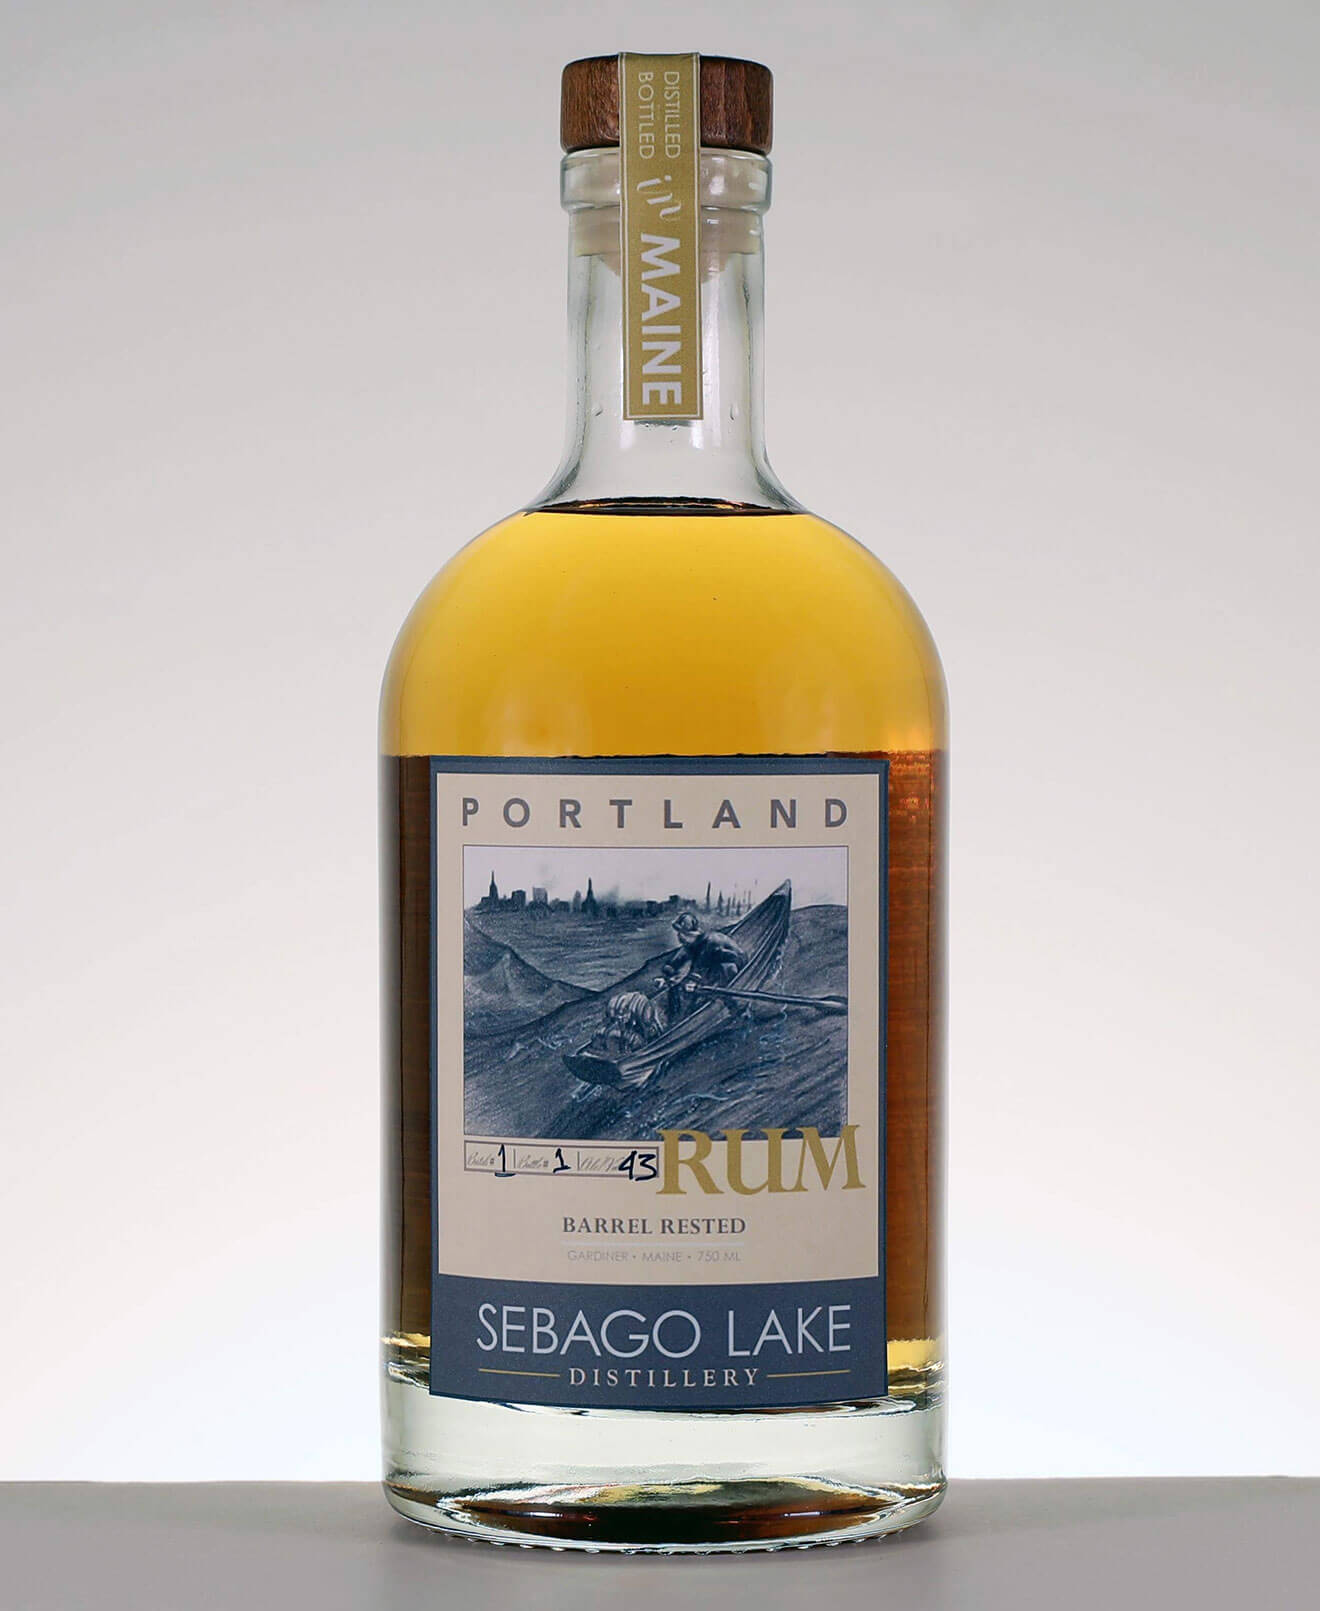 Barrel Rested Portland Rum, bottle on grey background